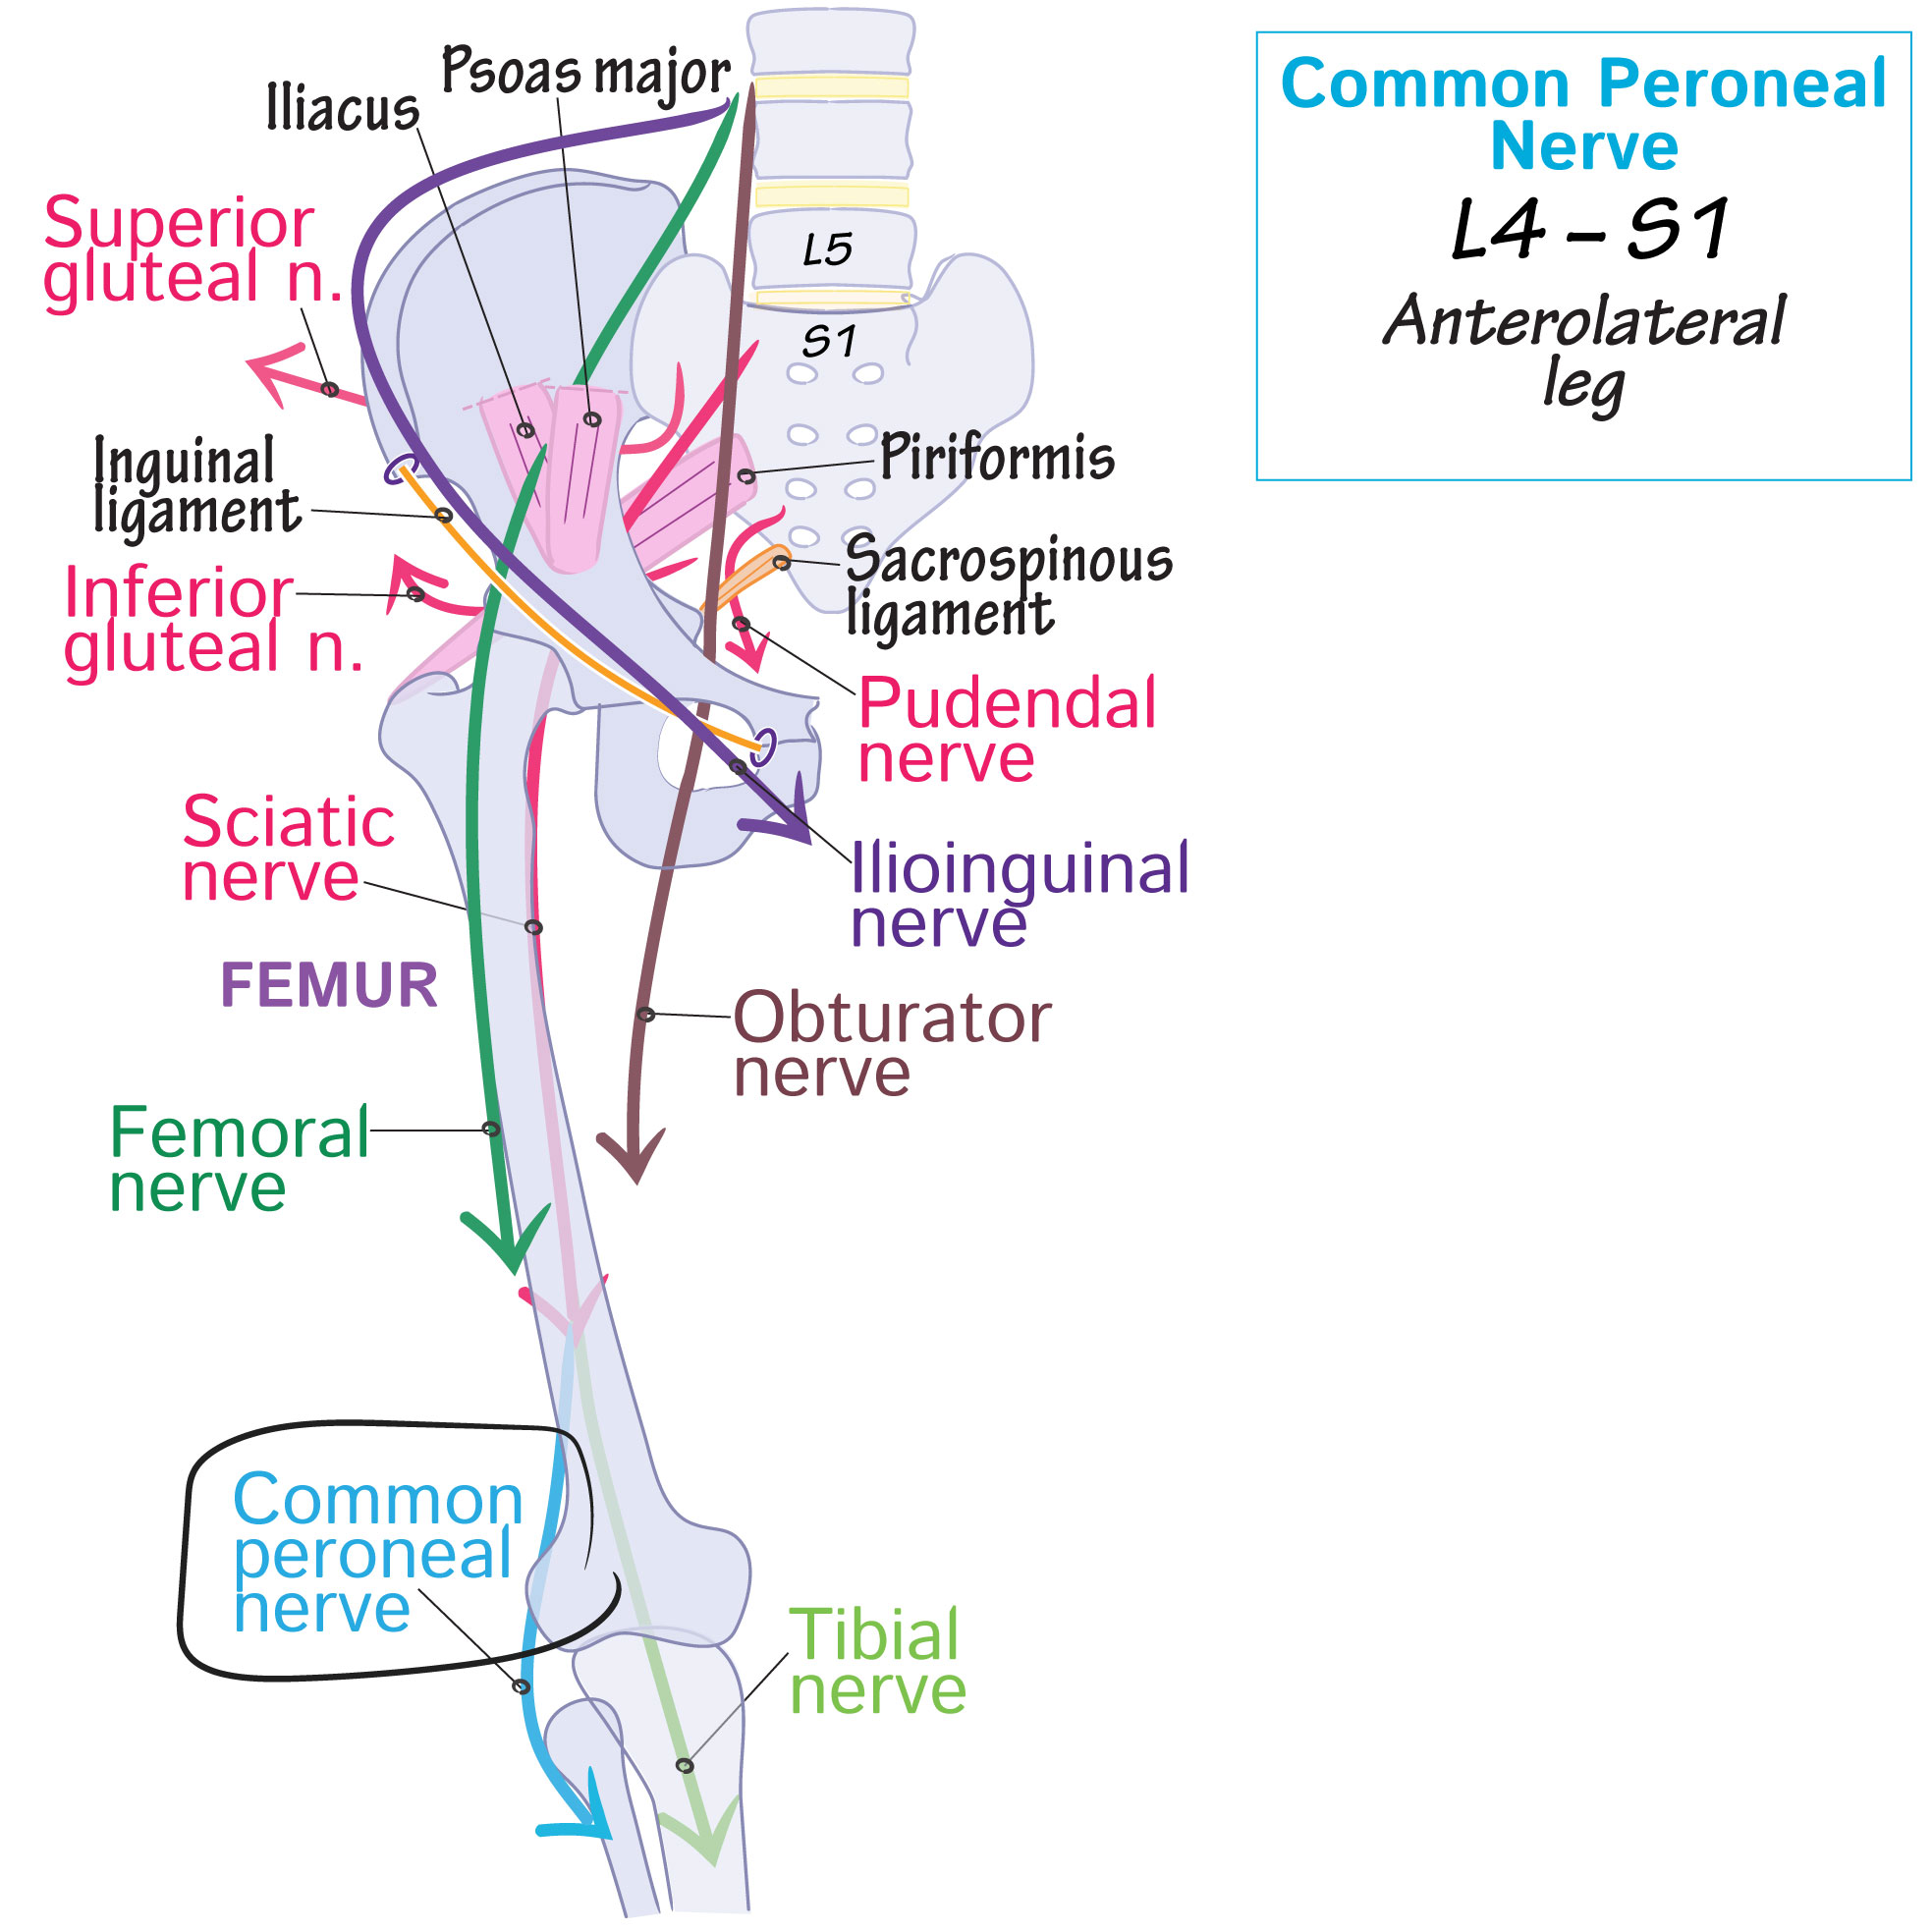 Common peroneal nerve | Draw It to Know It